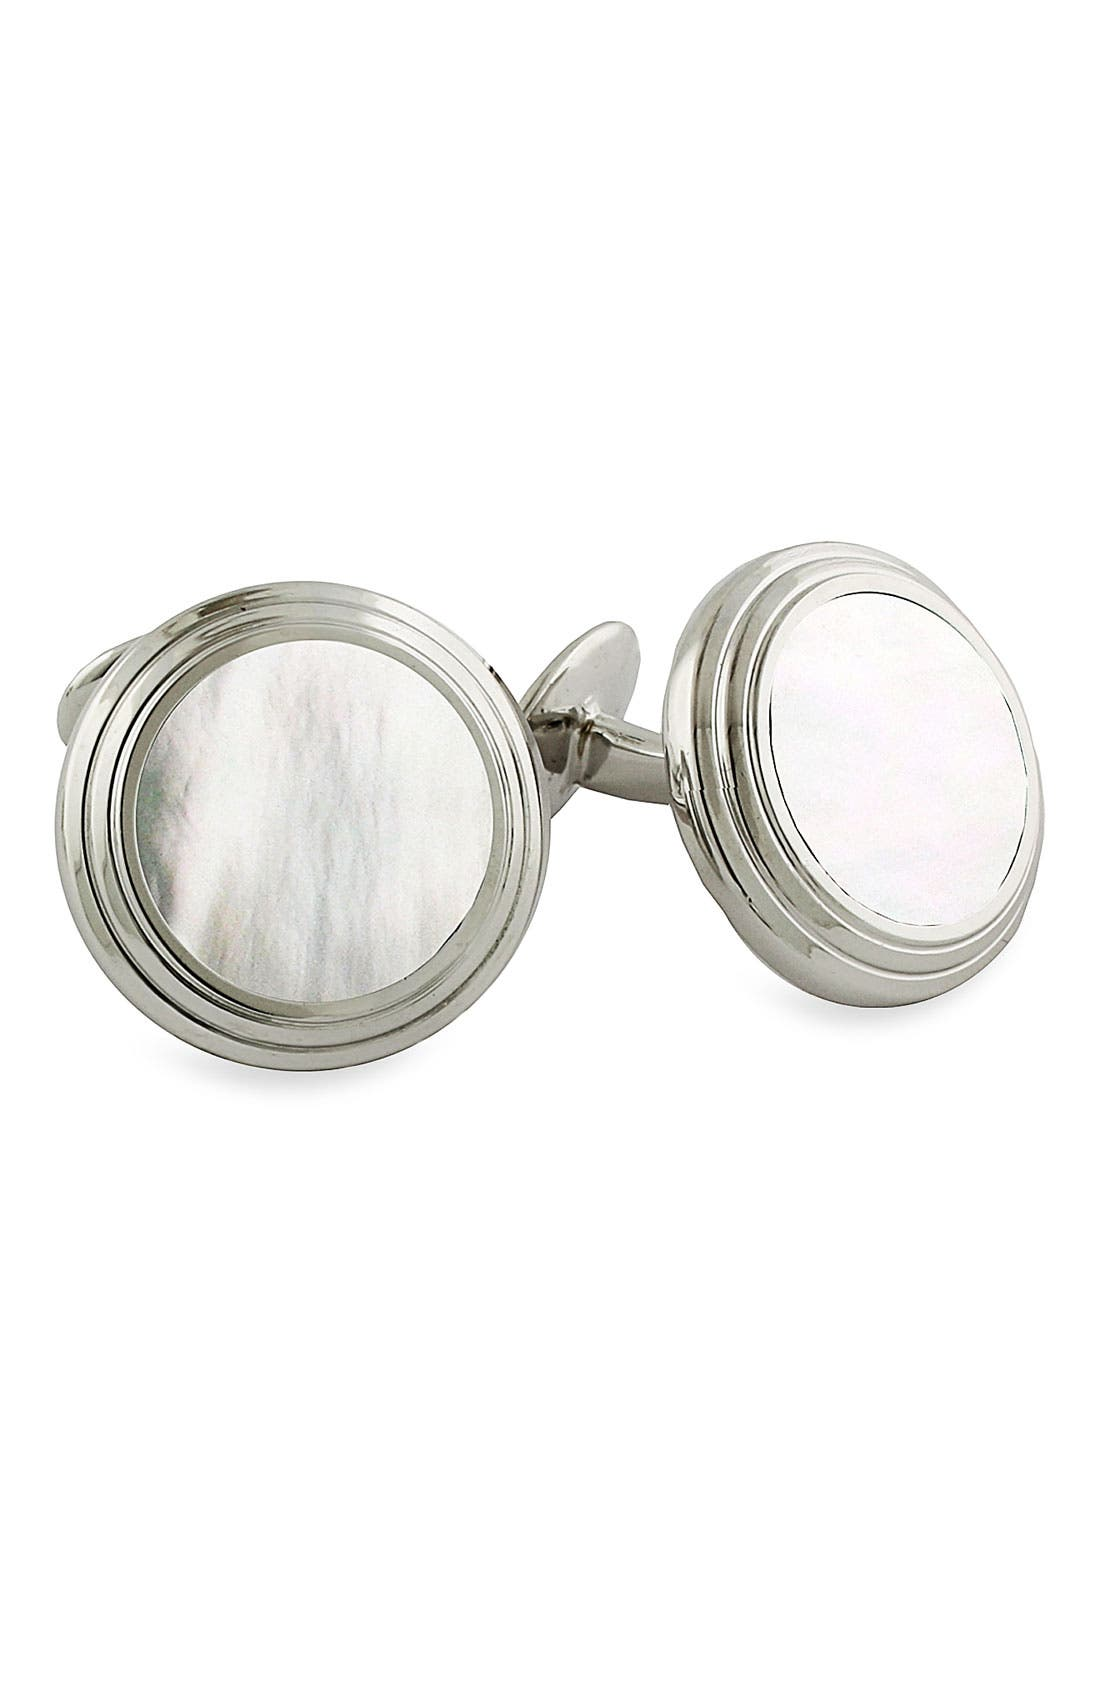 Alternate Image 1 Selected - David Donahue Mother-of-Pearl Cuff Links